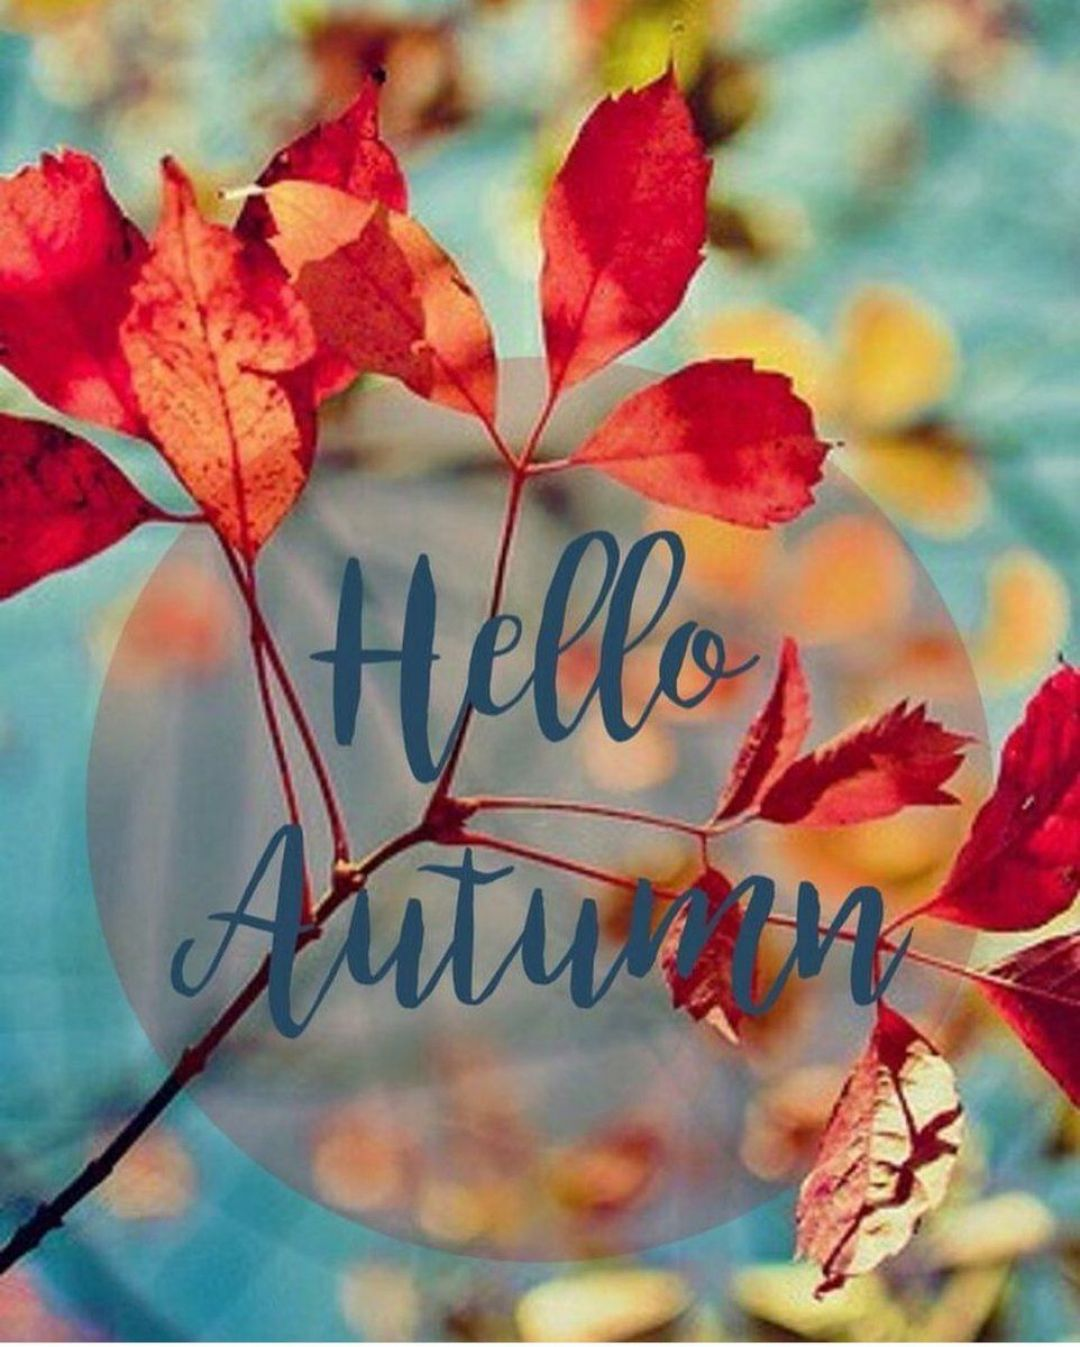 55 Hello Autumn Aesthetic Hd Wallpapers Desktop Background Android Iphone 1080p 4k 1080x1347 2020